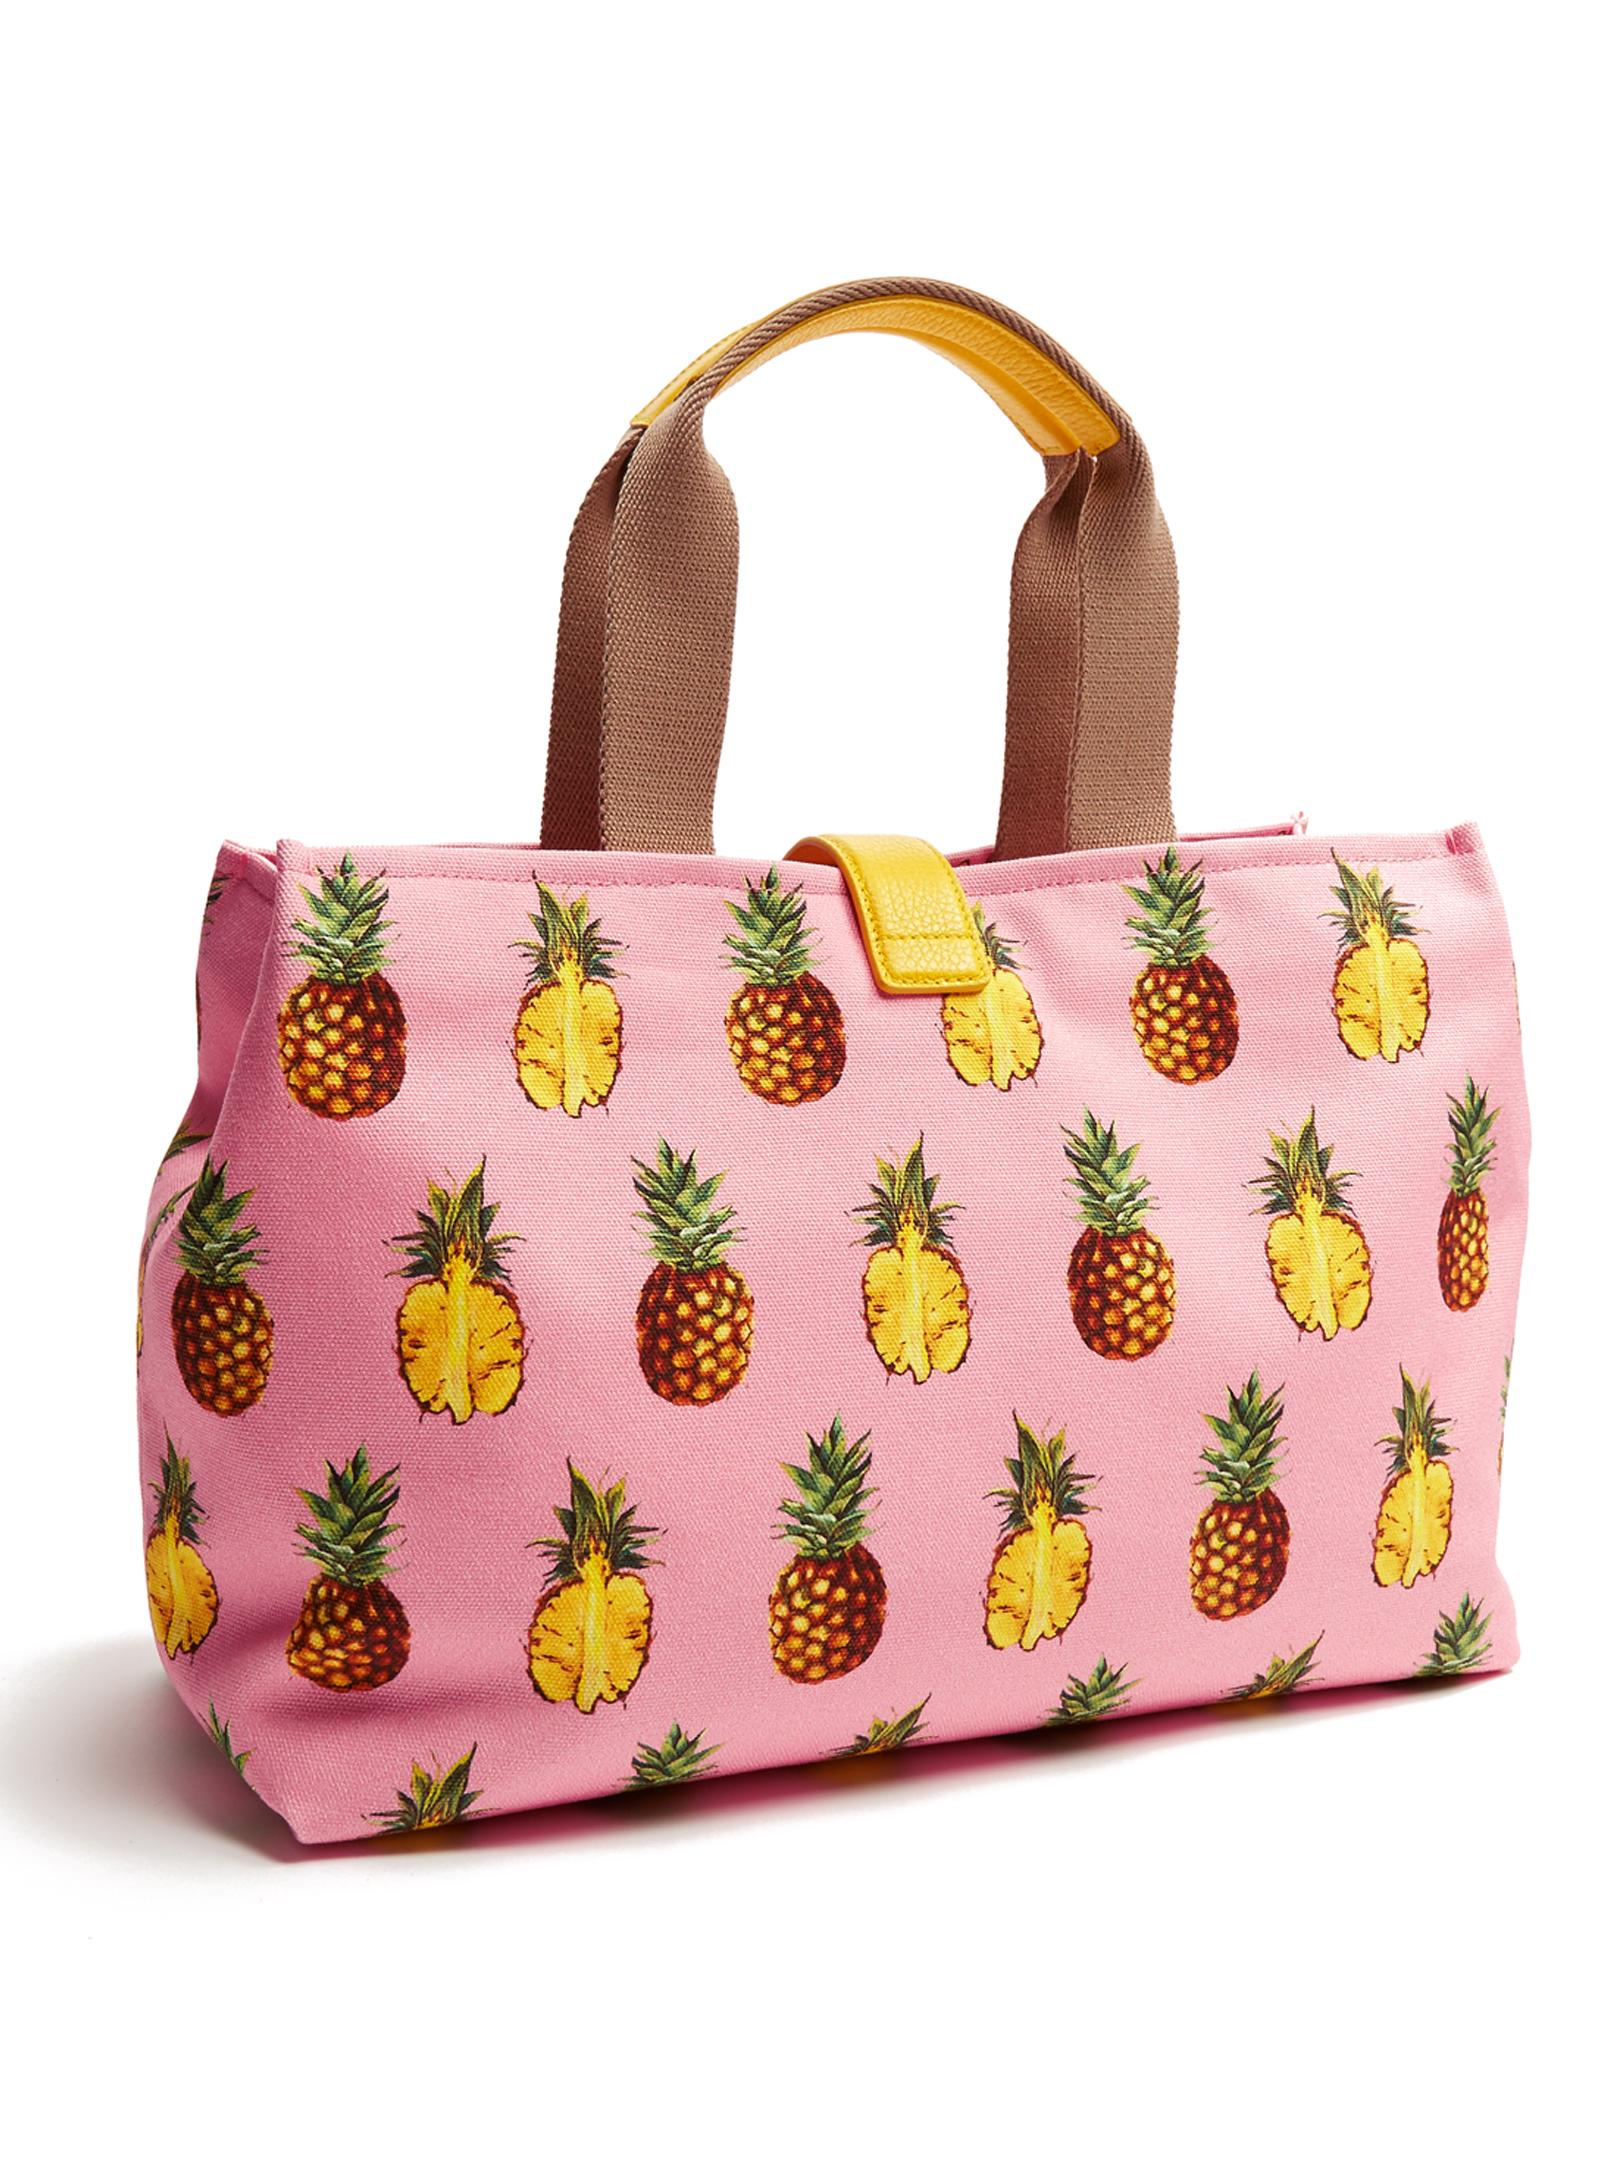 Dolce & Gabbana Canvas Pineapple Tote Bag in Pink/Purple (Pink)